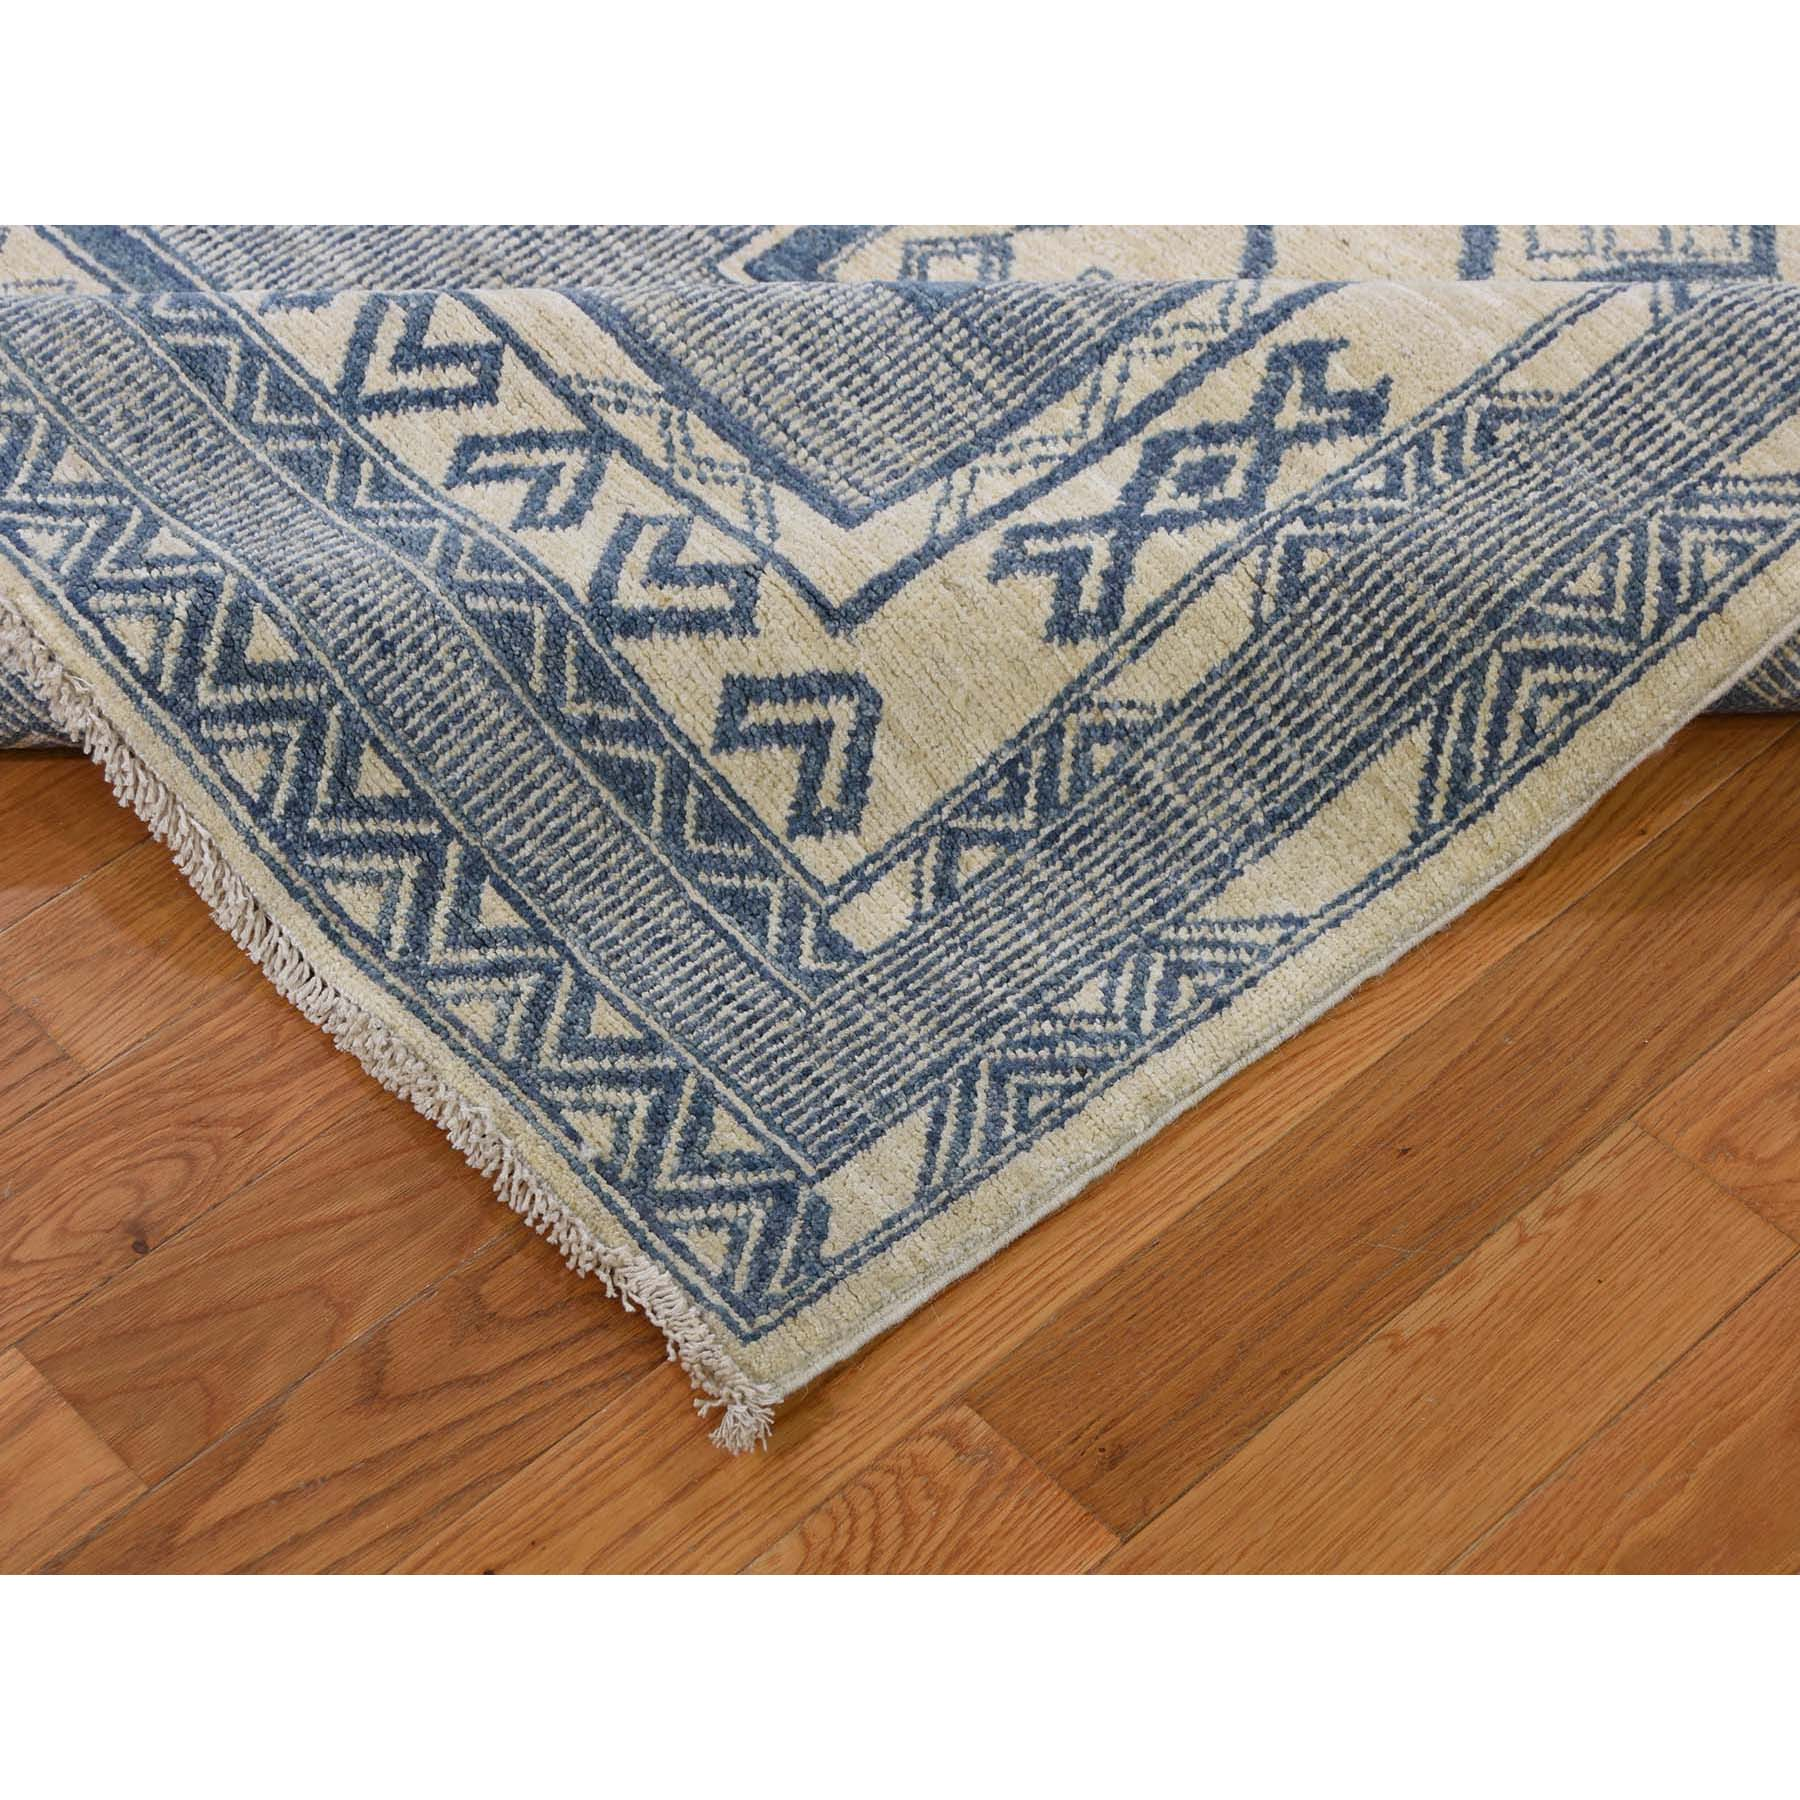 8-2 x10-3  Hand-Knotted Pure Wool Peshawar with Southwestern Motifs Oriental Rug